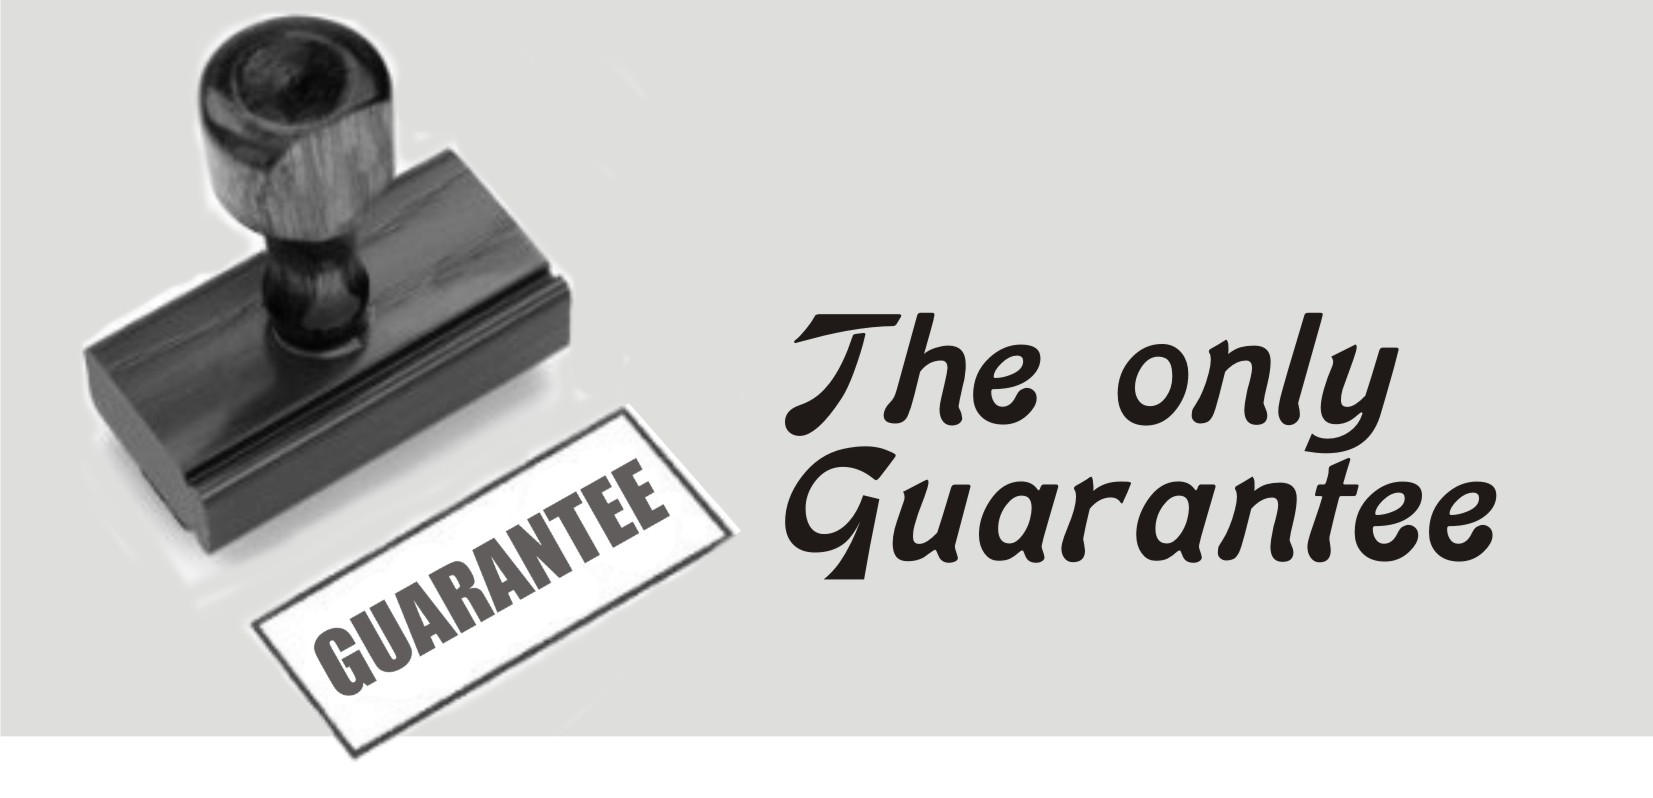 THE ONLY GUARANTEE!